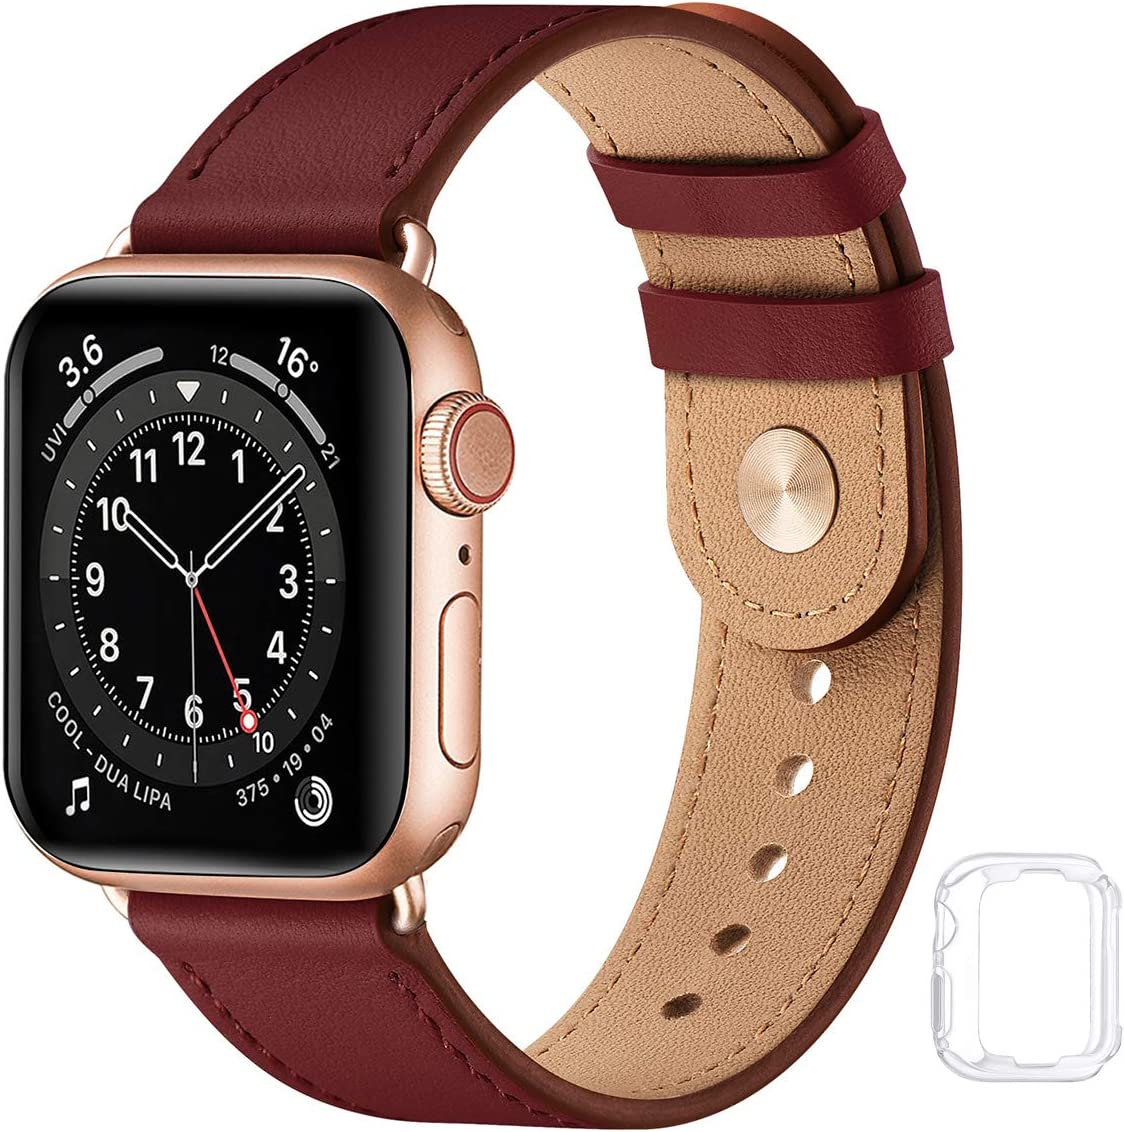 Soft Leather Watch Bands Compatible with Apple Watch Band 38mm 40mm 42mm 44mm, Special Watch Band Replacement Strap for Women Men for iWatch SE Series 6 5 4 3 2 1 (Wine with Rose Gold, 38MM/40MM)